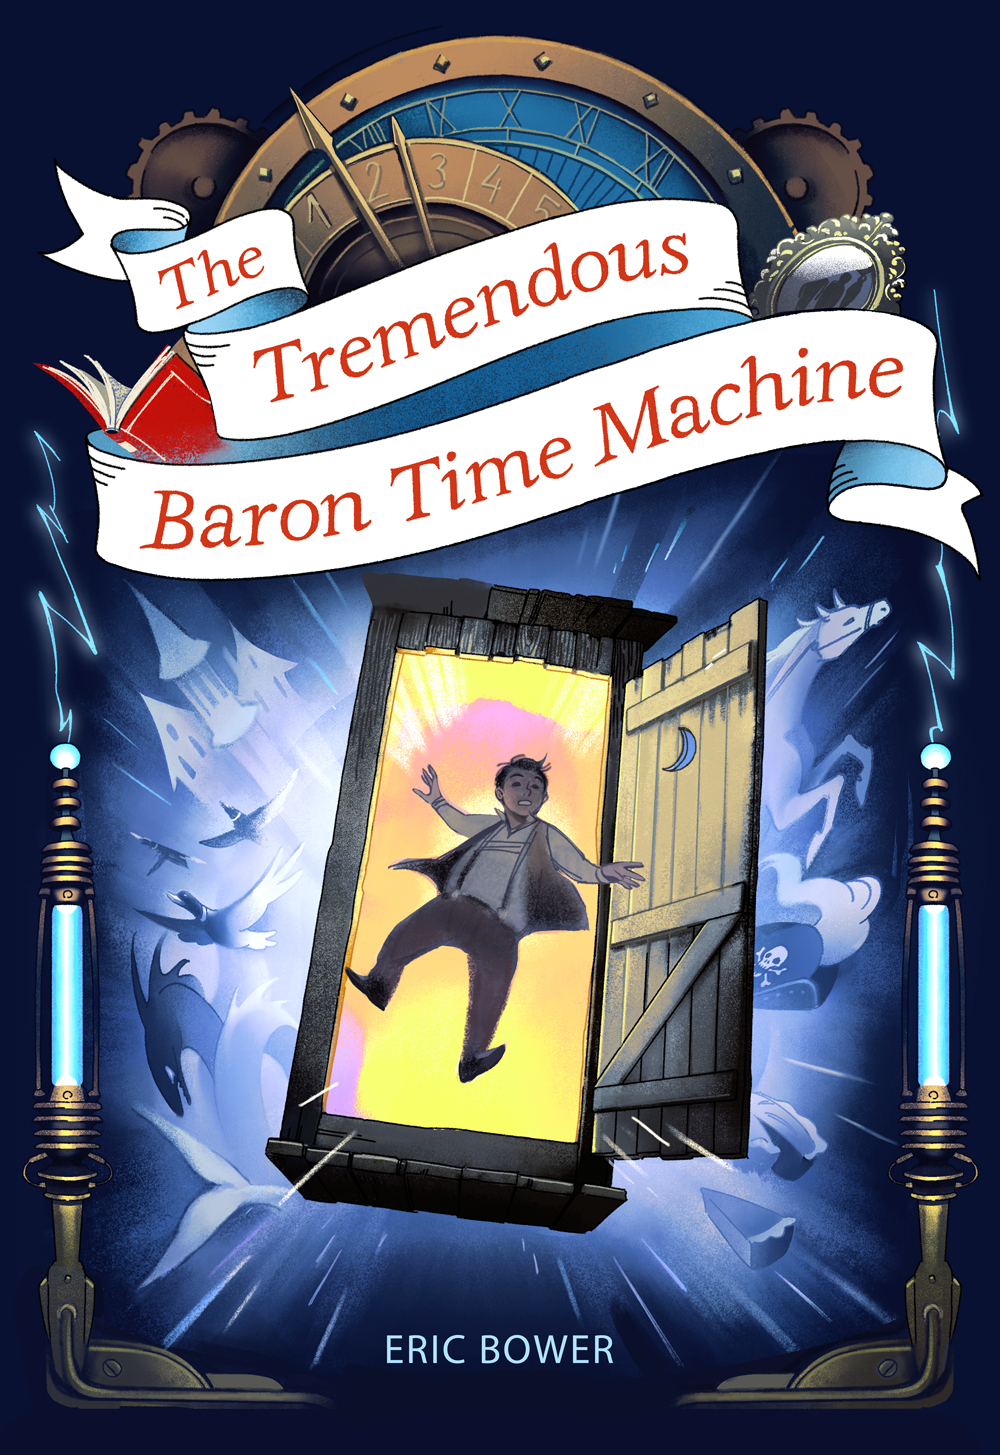 BaronTimeMachine_front cover.png